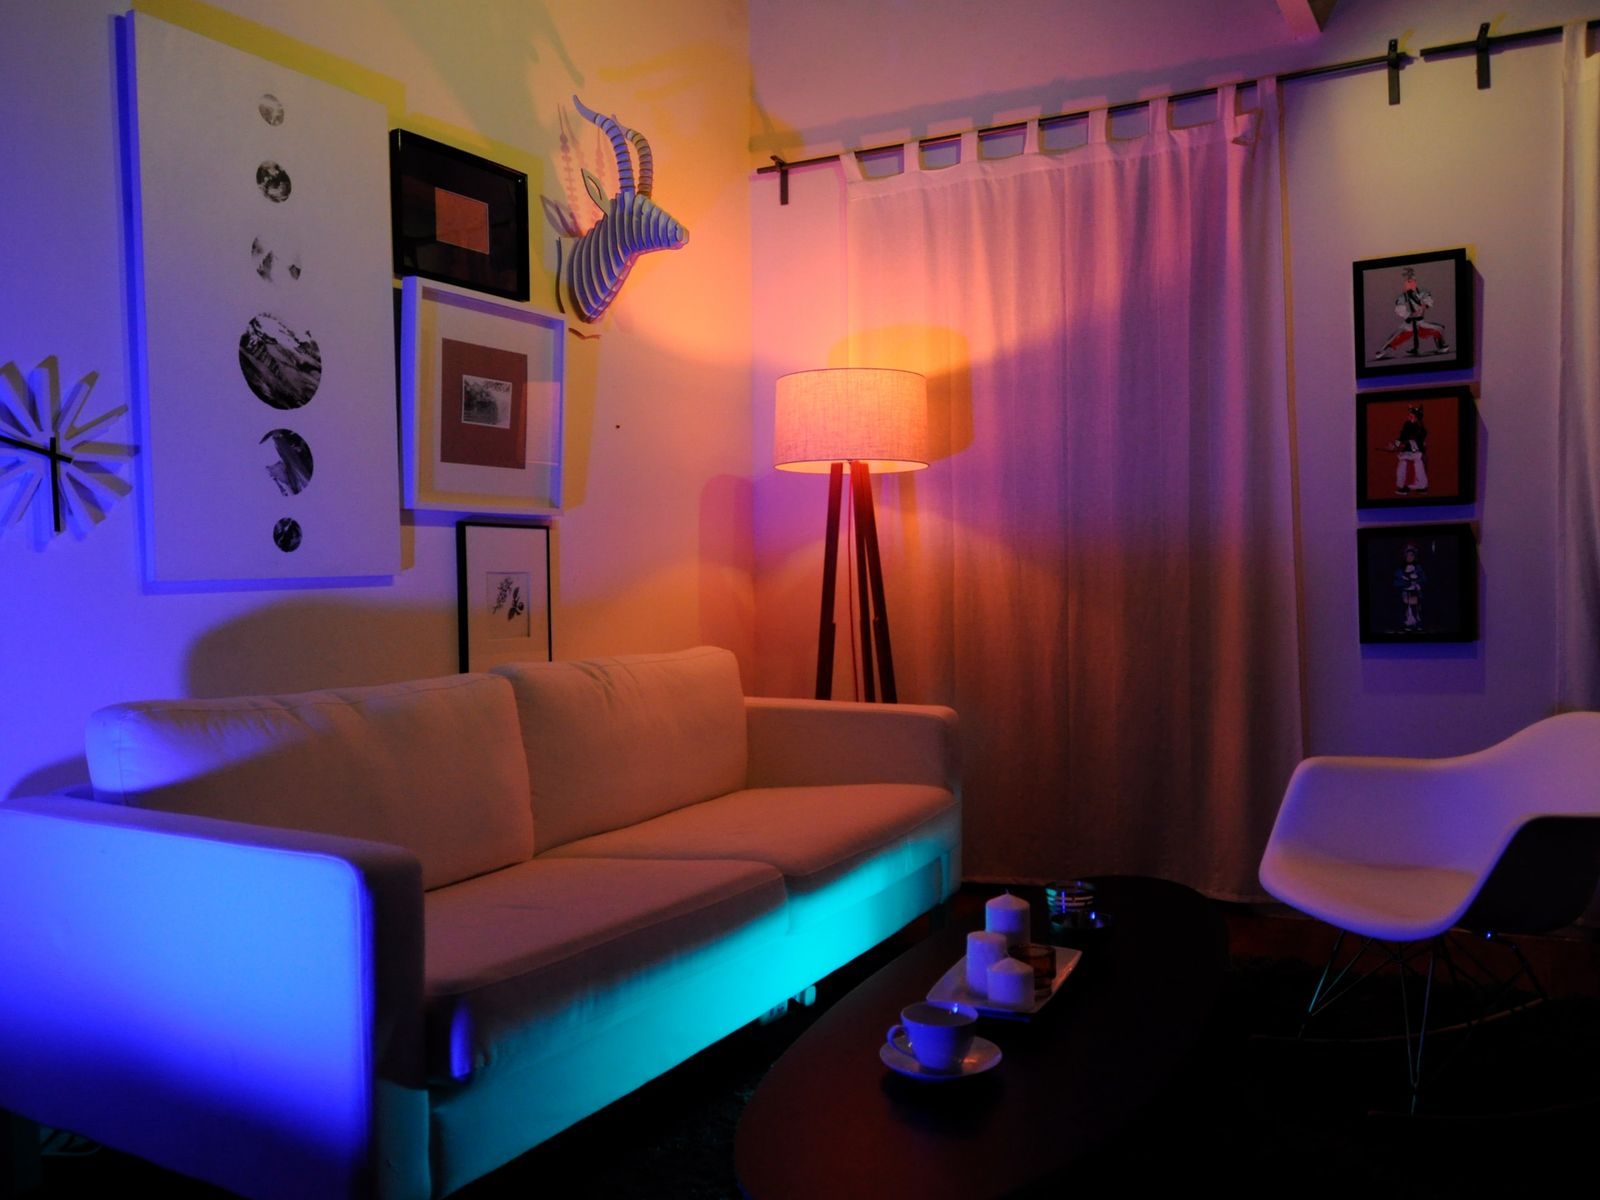 rgb led lampe mit fernbedienung jedi lighting e14 eek b 3 2 w led lampe ebay. Black Bedroom Furniture Sets. Home Design Ideas